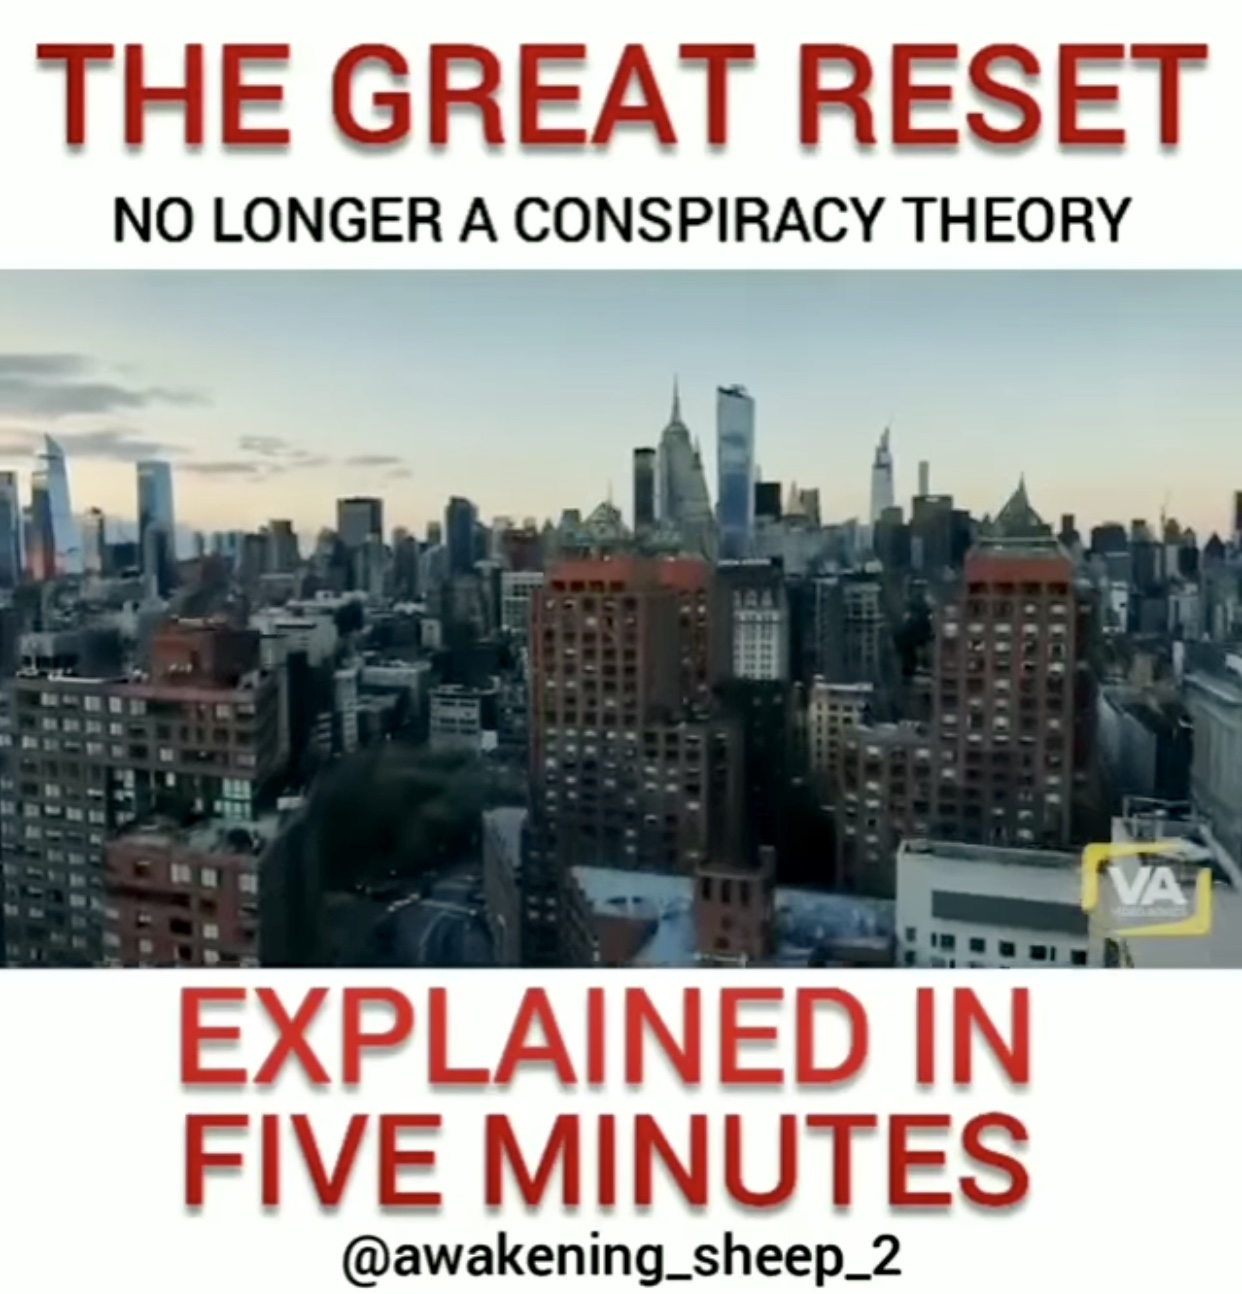 The Great Reset…will our freedoms and rights survive?